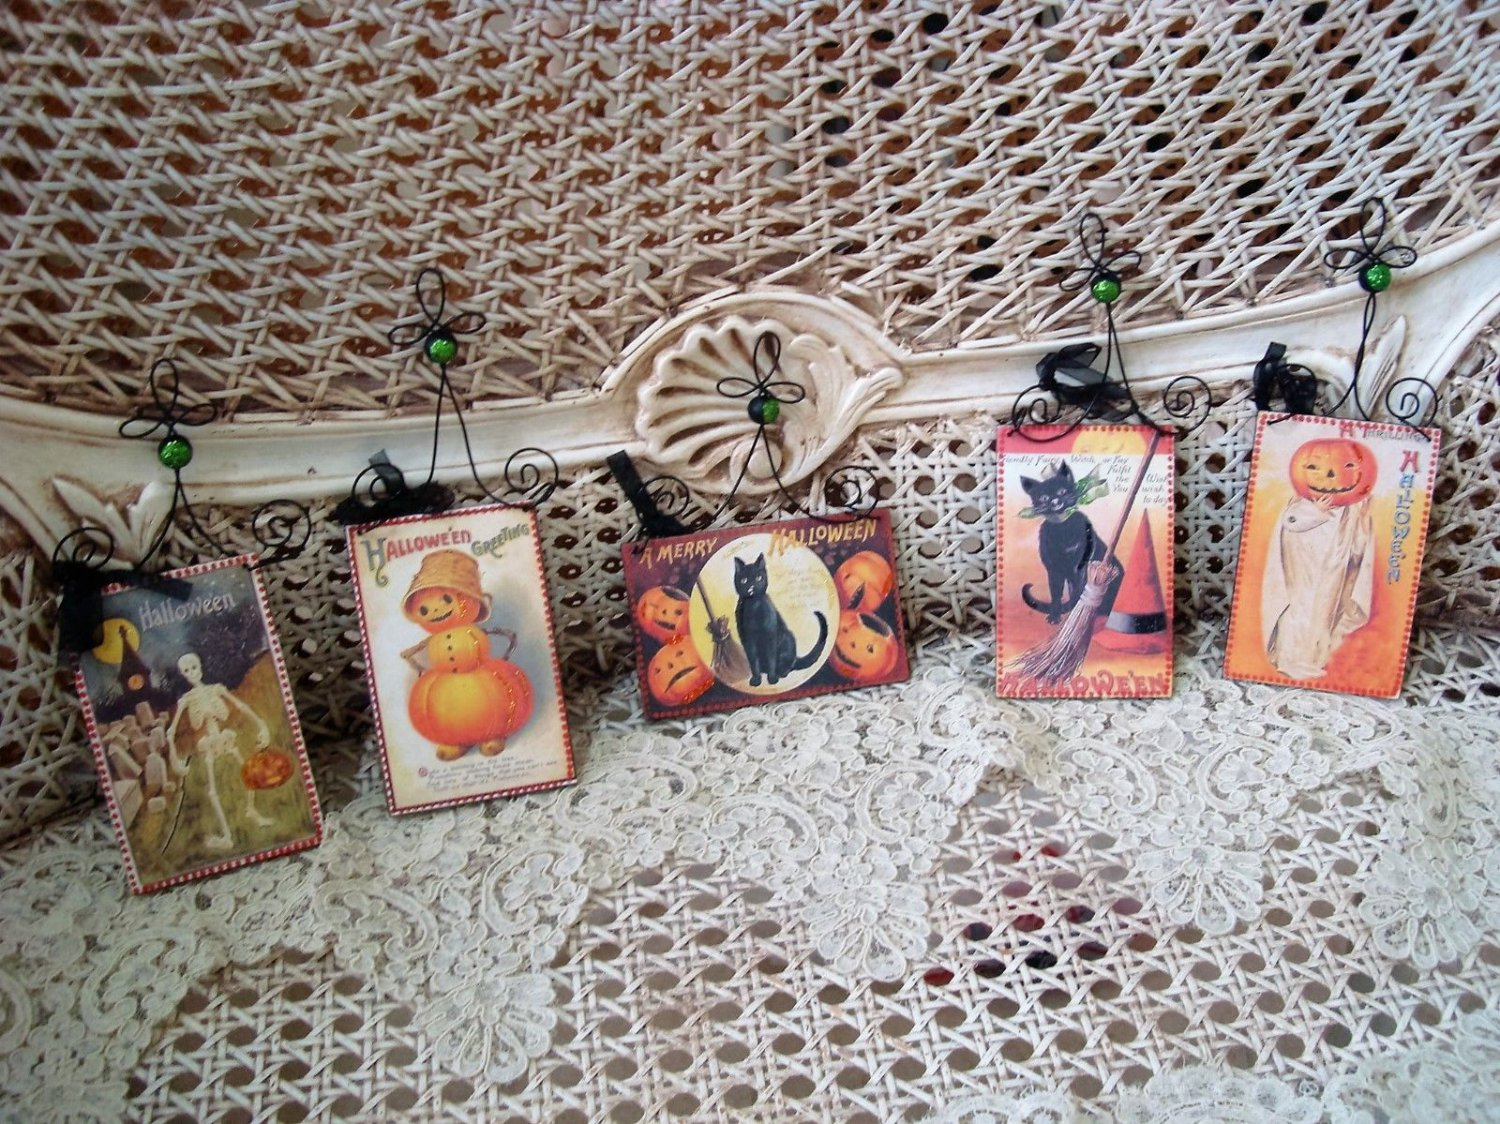 SET OF 5 VINTAGE INSPIRED HALLOWEEN ORNAMENTS POSTCARDS WITH GLITTER **SO CUTE**